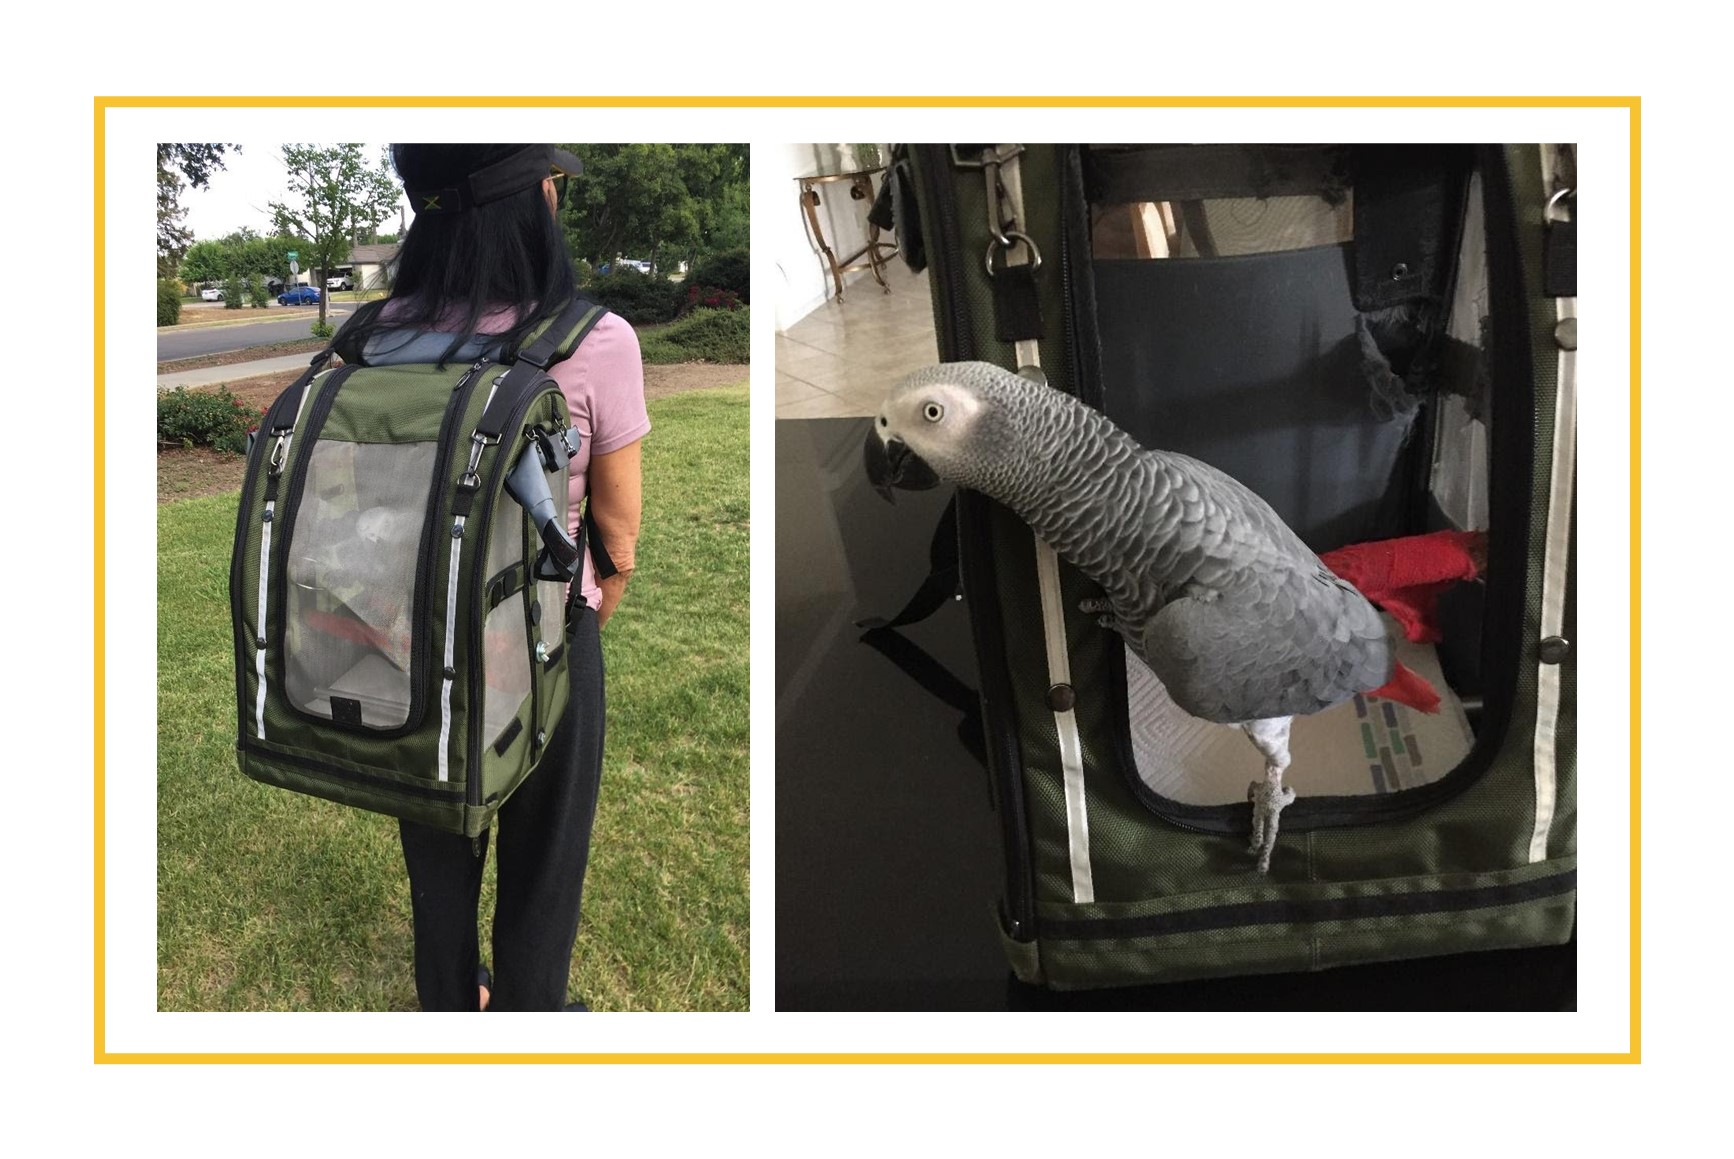 Parrot in specially designed carry backpack